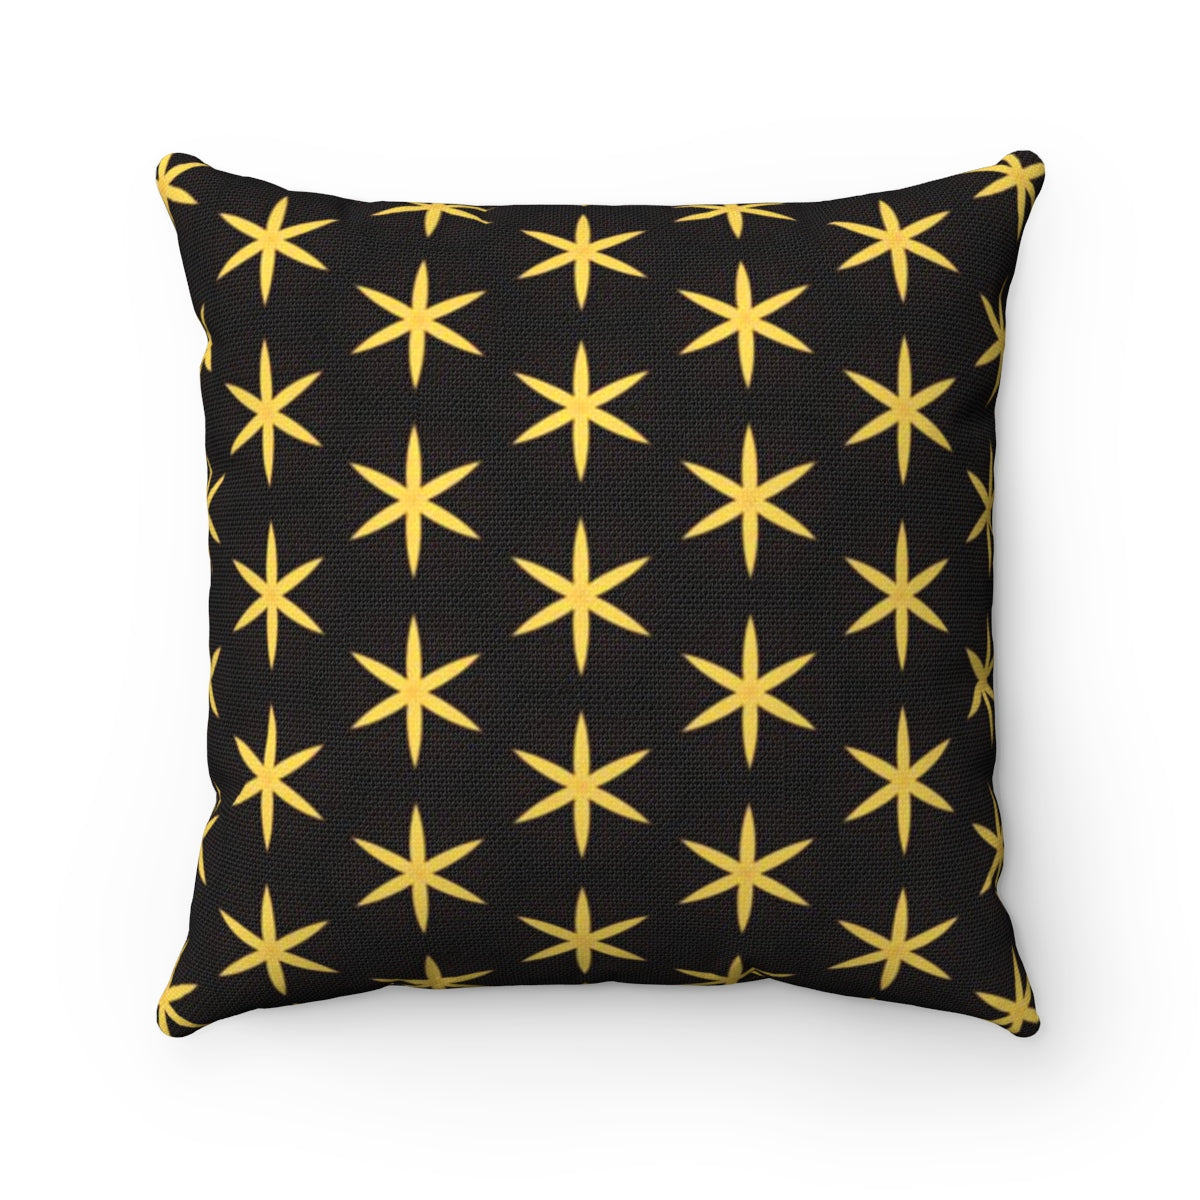 STARBURSTS- Spun Polyester Square Pillow